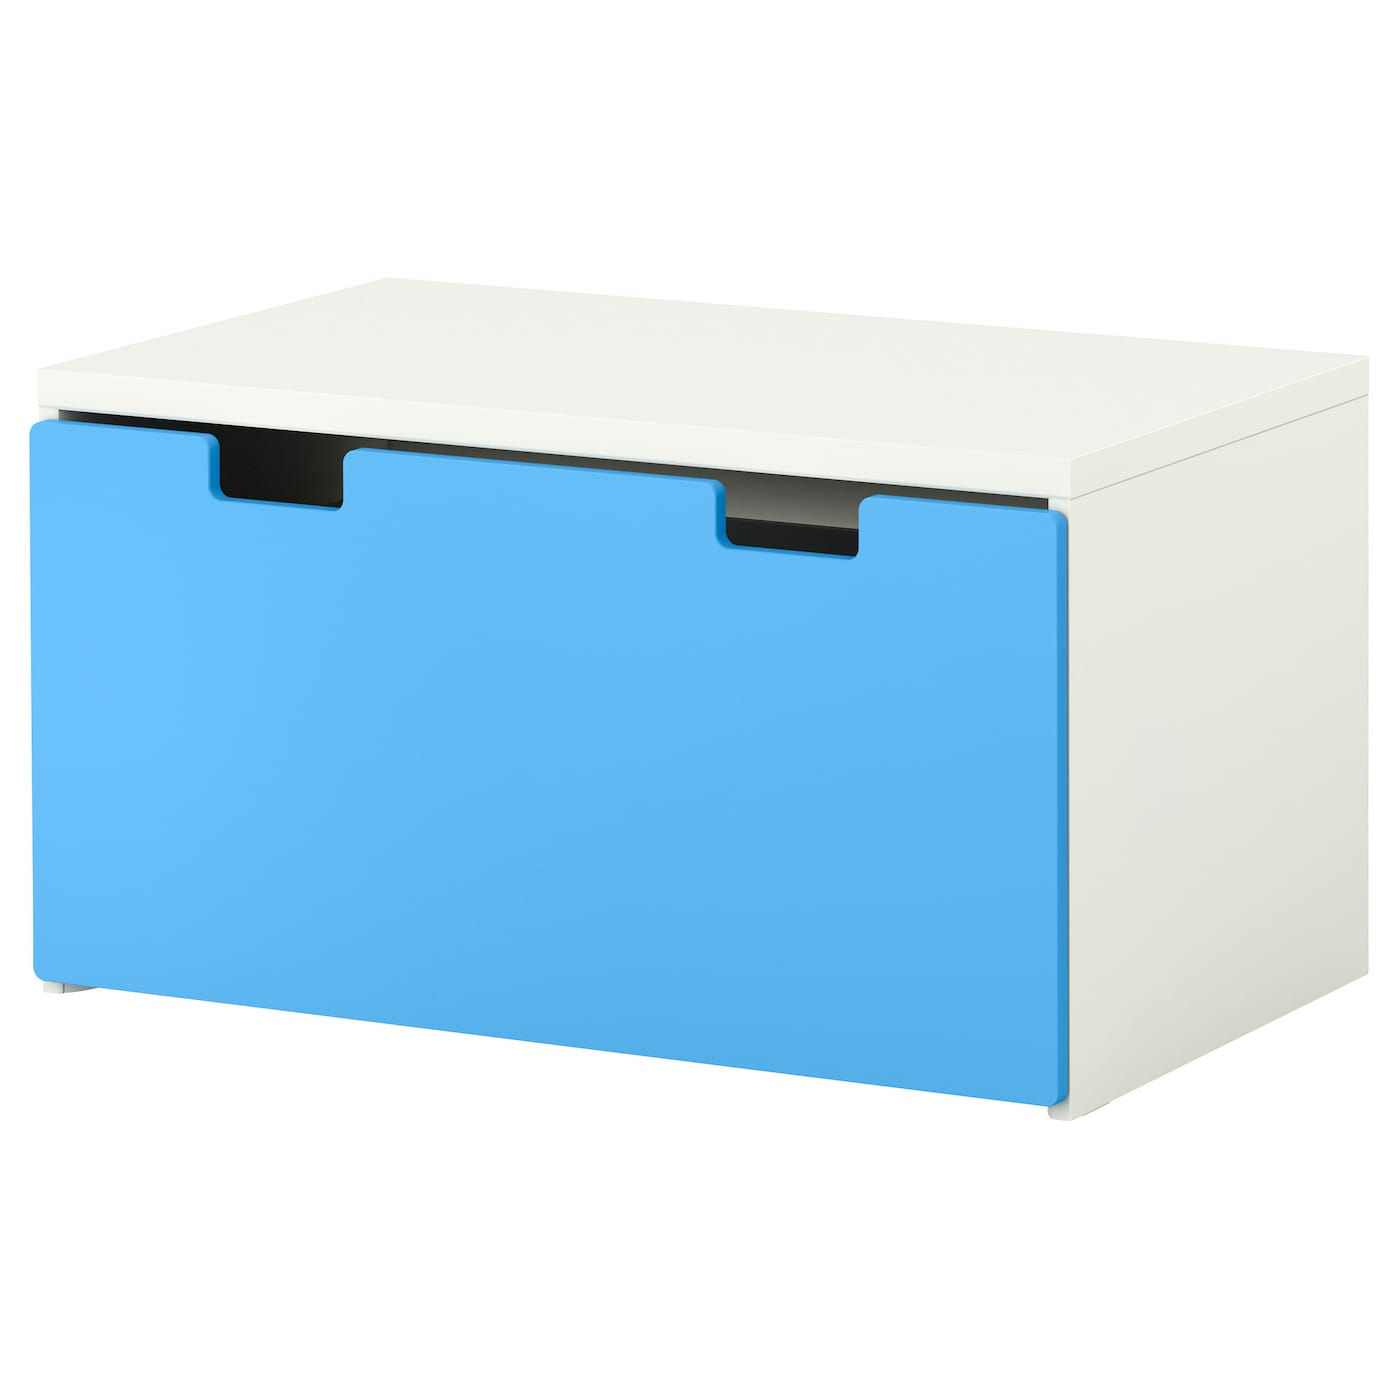 Stuva storage bench white blue 90x50x50 cm ikea for Cassapanca ikea